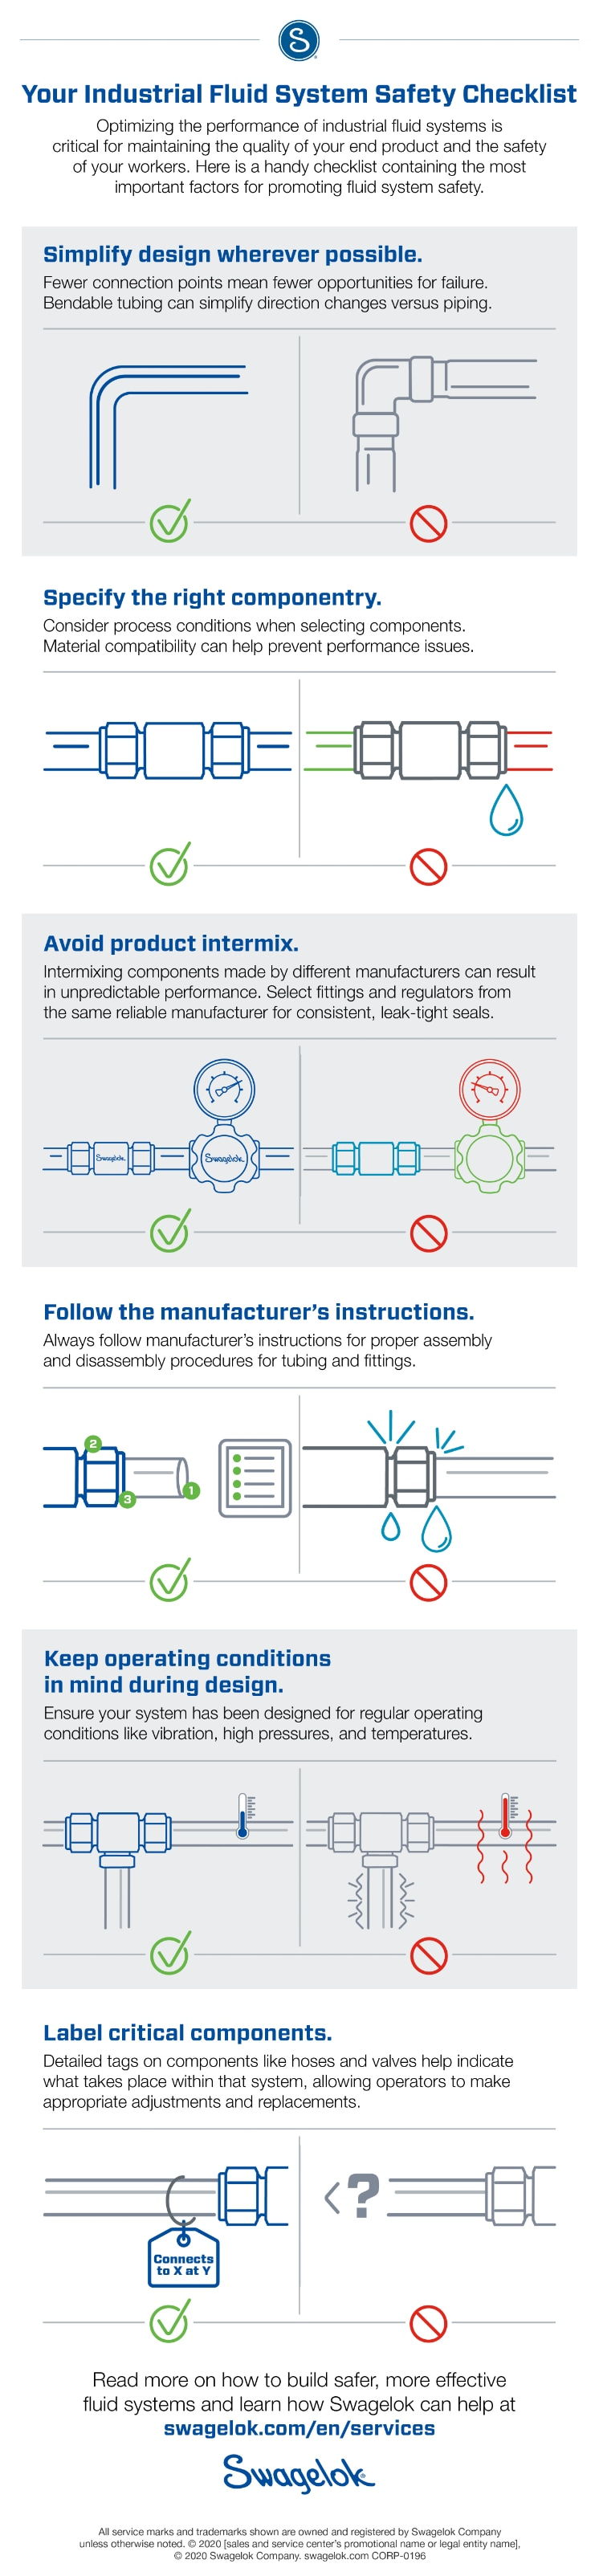 Safety checklist for industrial fluid systems